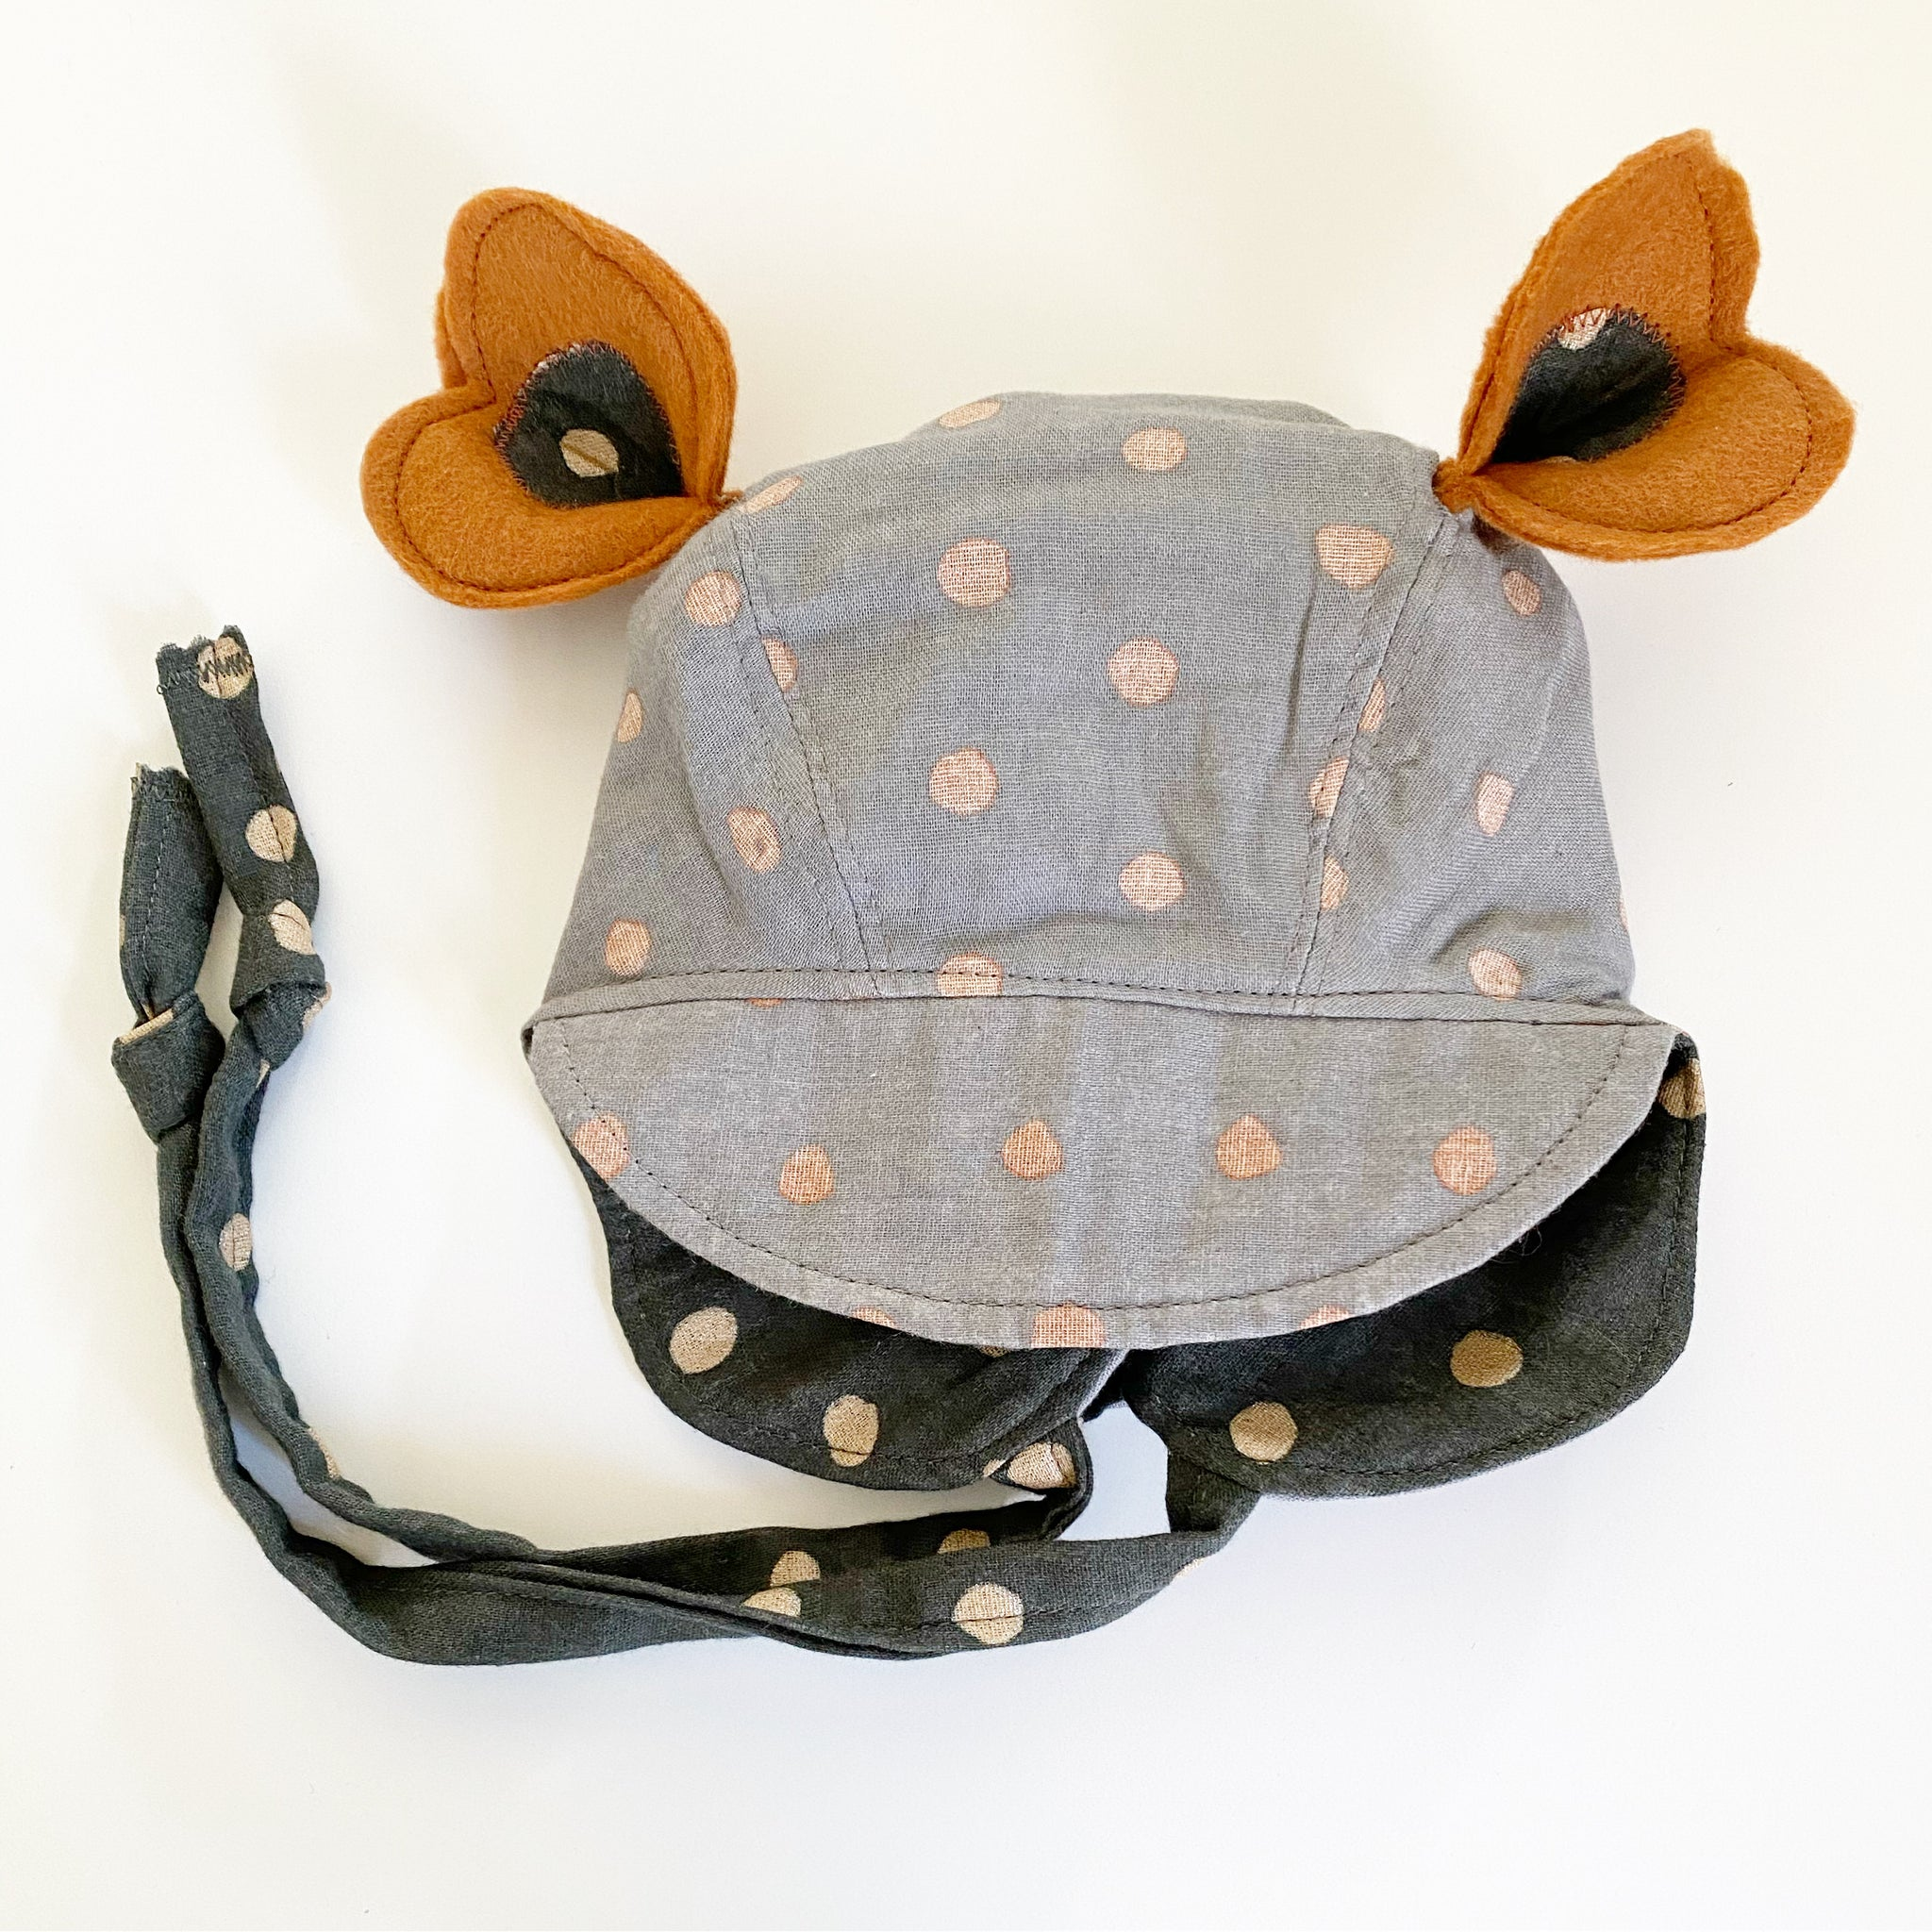 Reversible Heirloom Bonnet - Nani Iro Grey & Black